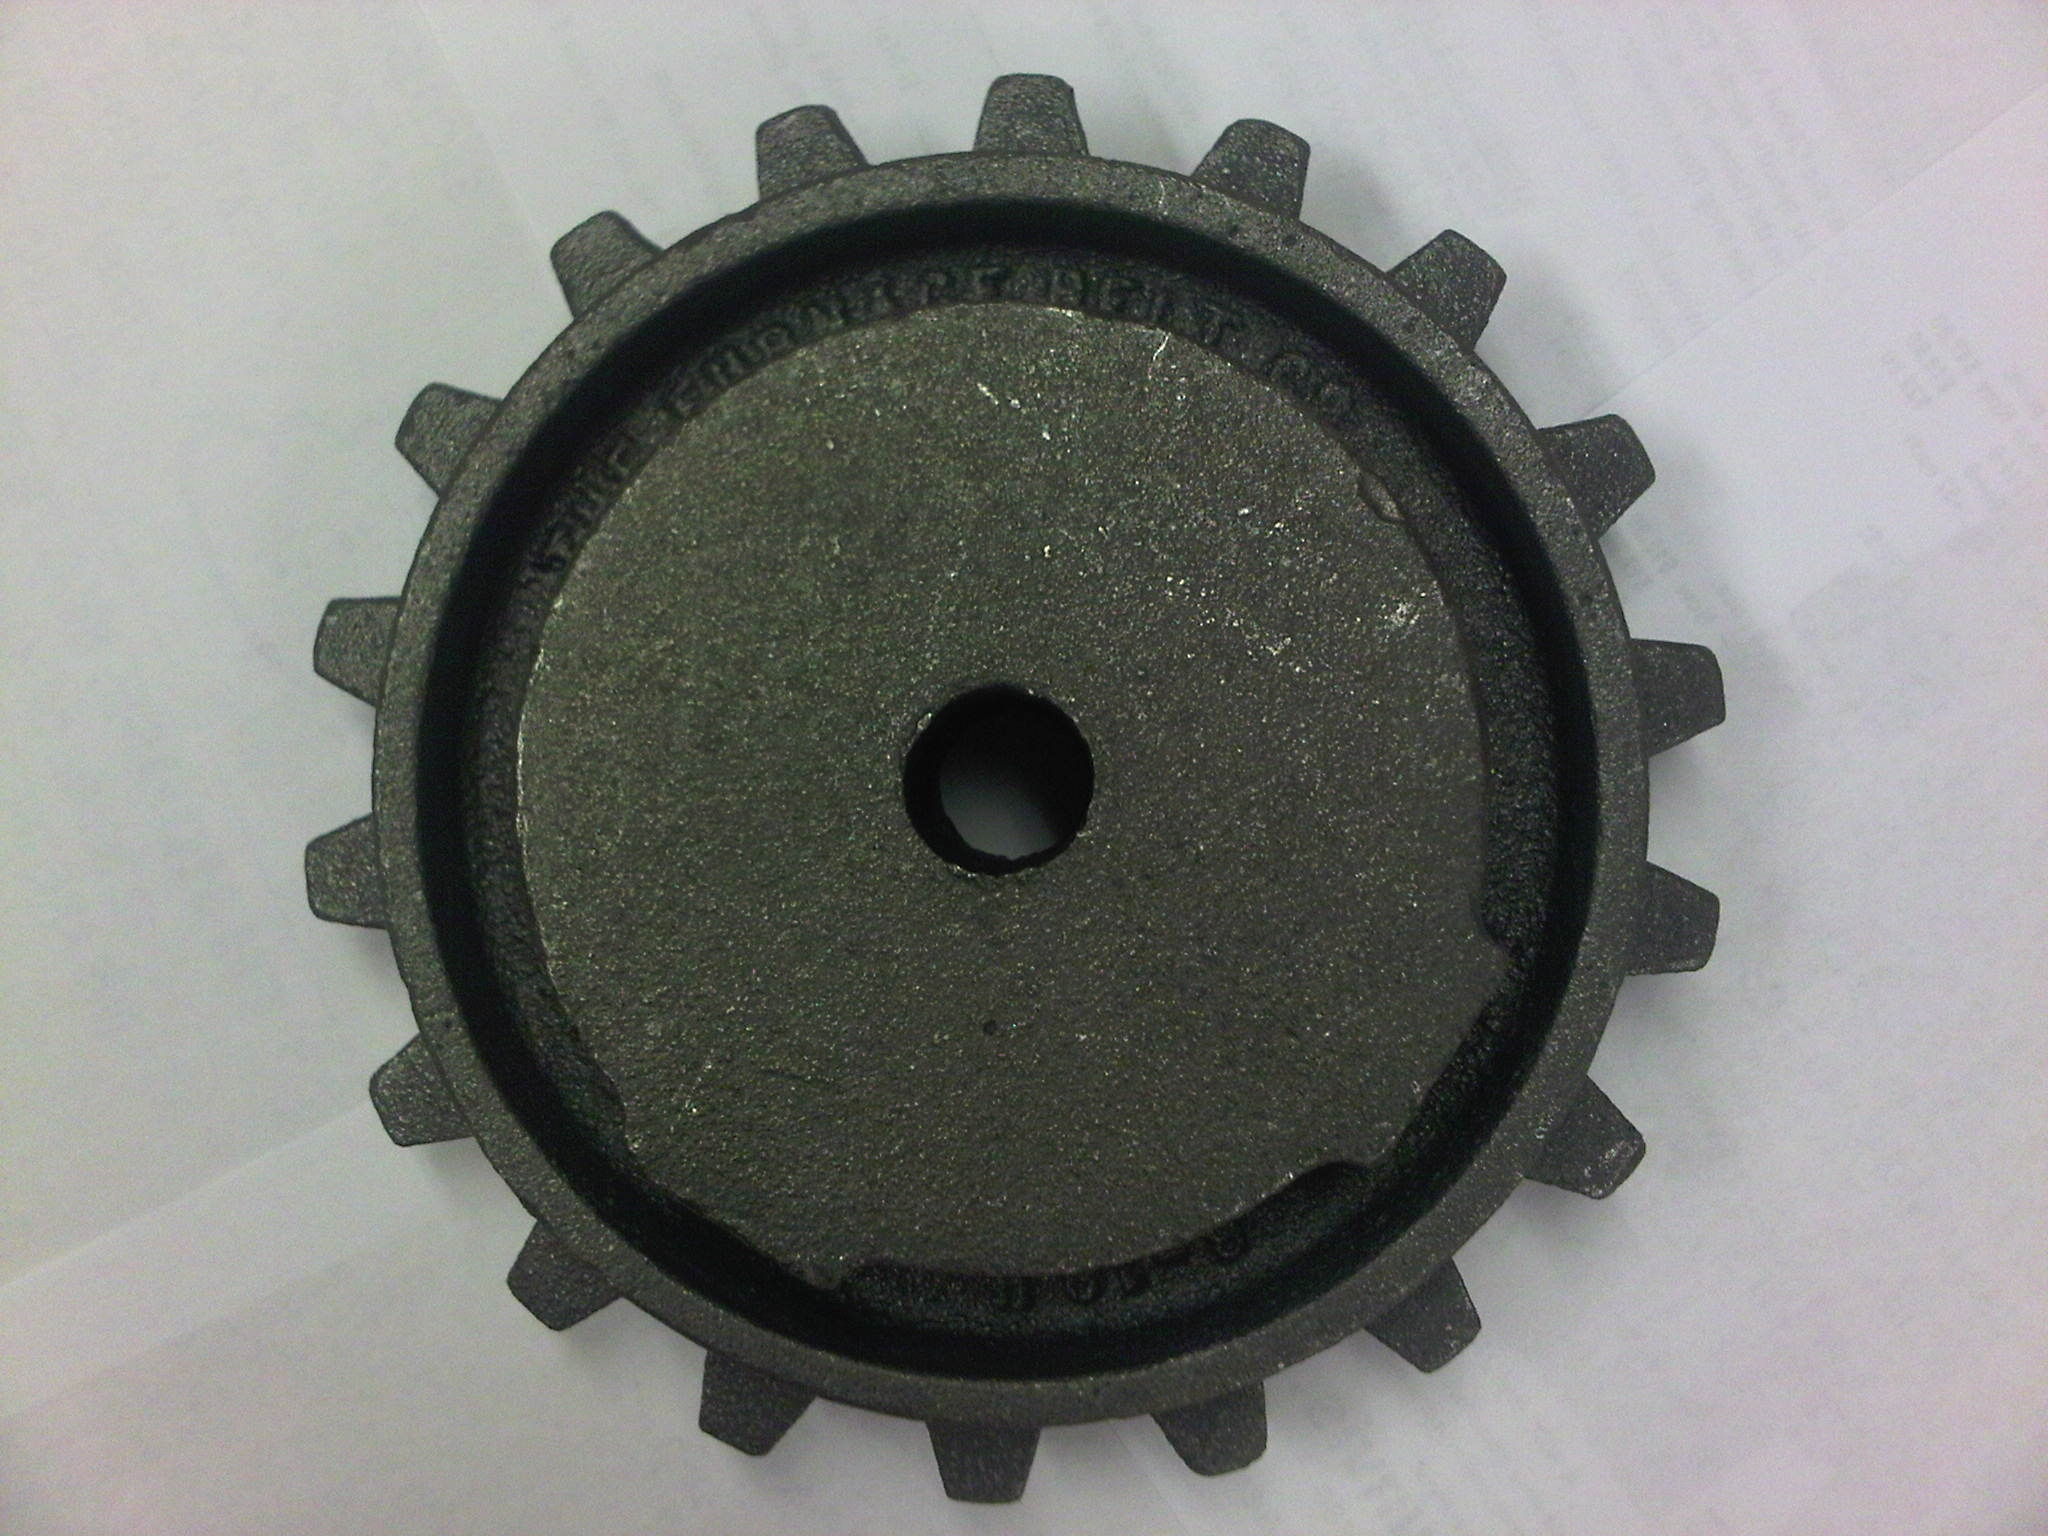 6-18 Heavy Duty Cast Iron Sprocket